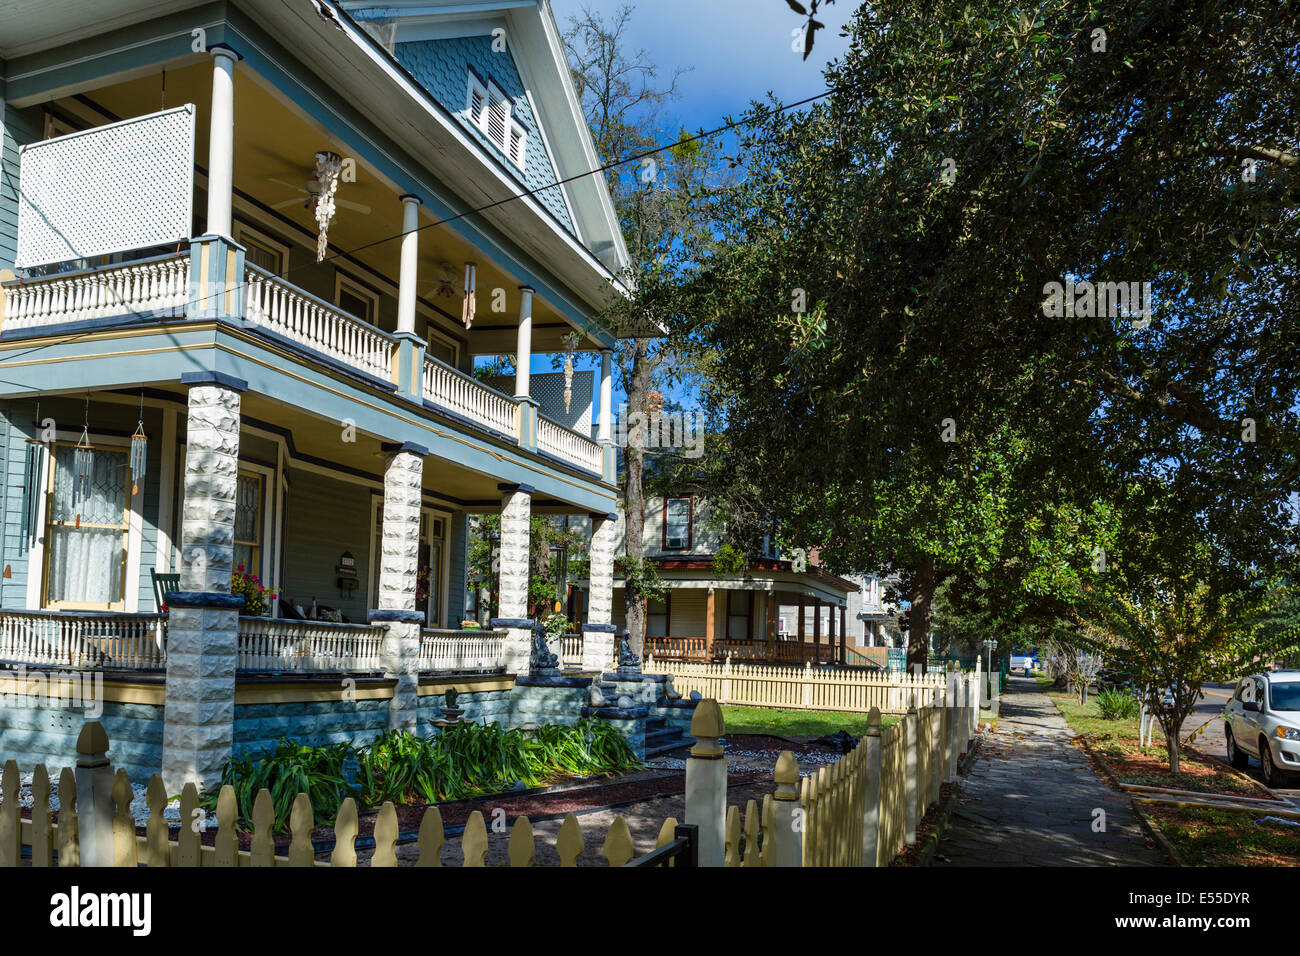 Houses on North Pearl Street in the historic Springfield district of Jacksonville, Florida, USA - Stock Image